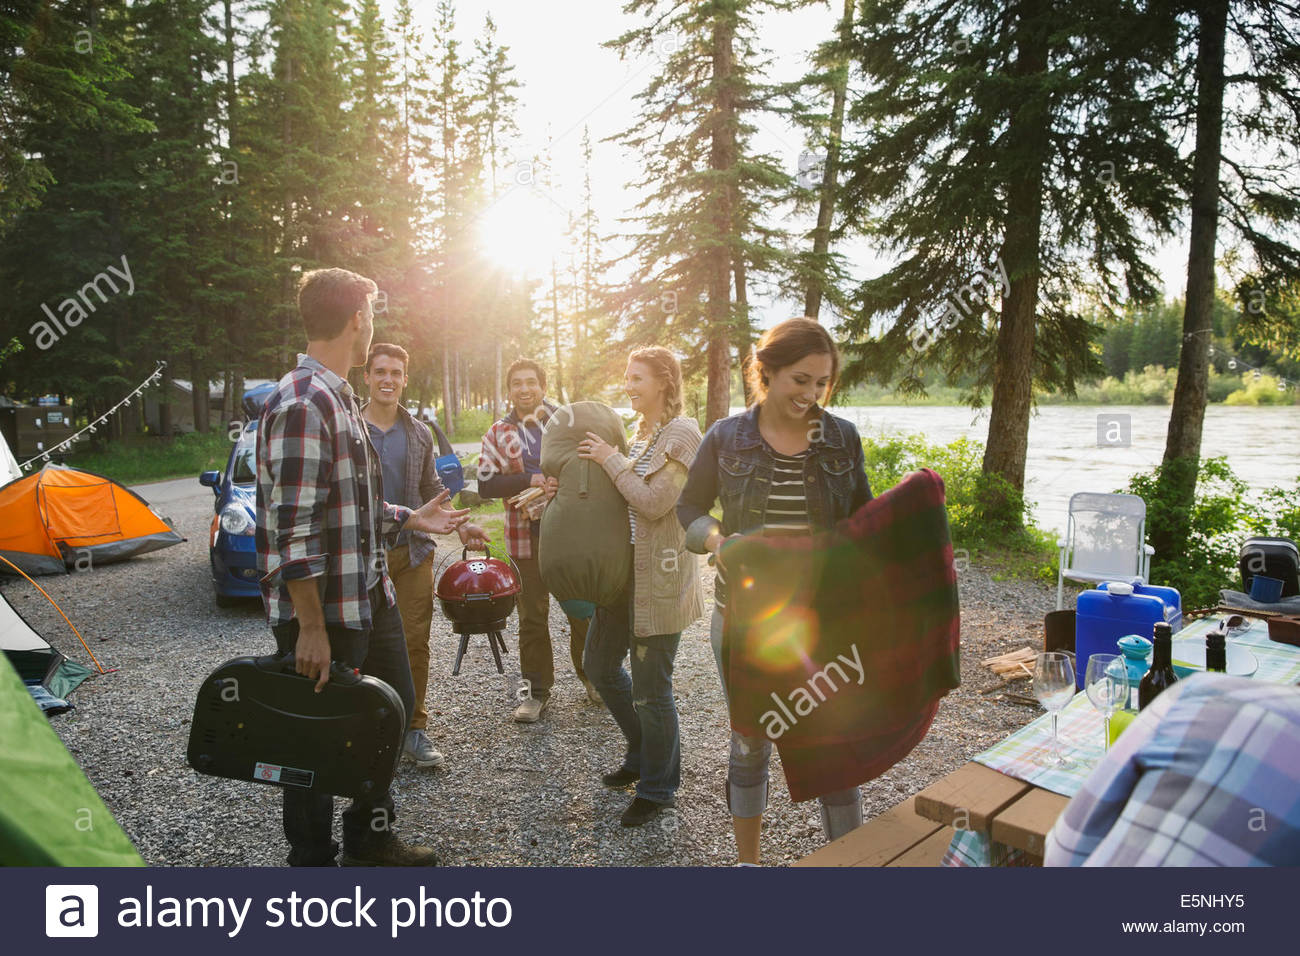 Friends with gear at campsite - Stock Image